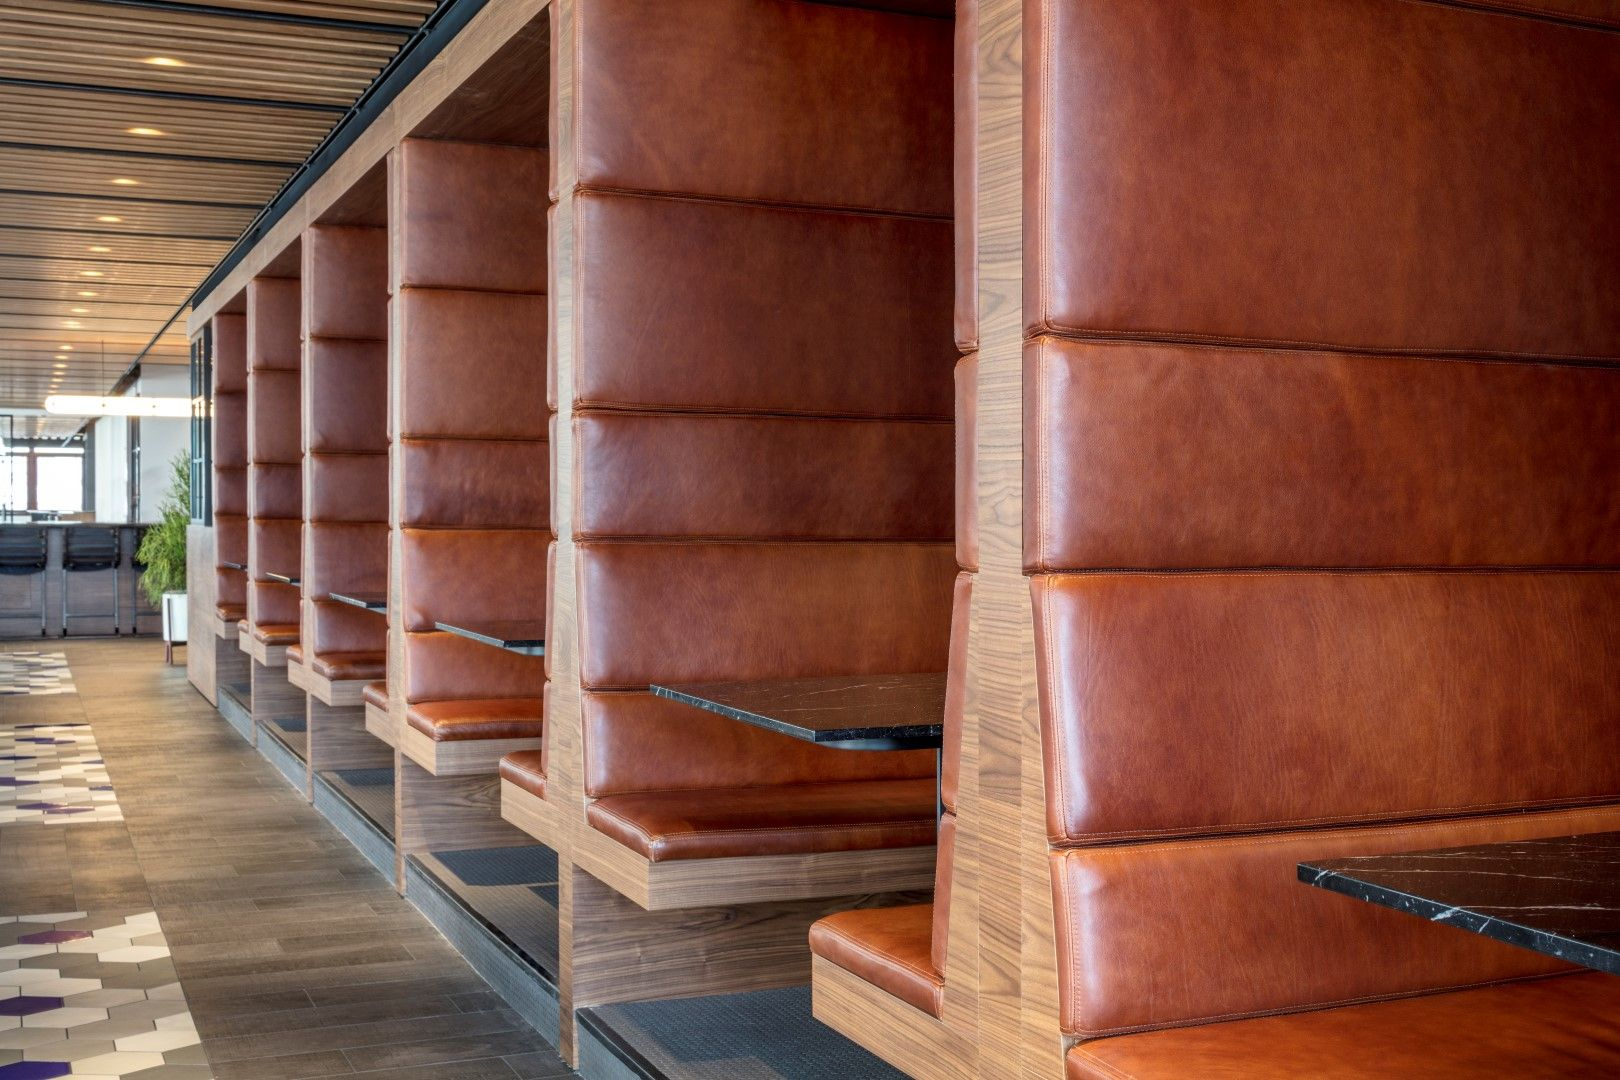 Fully upholstered leather boothsbanquettes with marble tables and fully upholstered leather boothsbanquettes with marble tables and penny tile floors oak slat dailygadgetfo Image collections